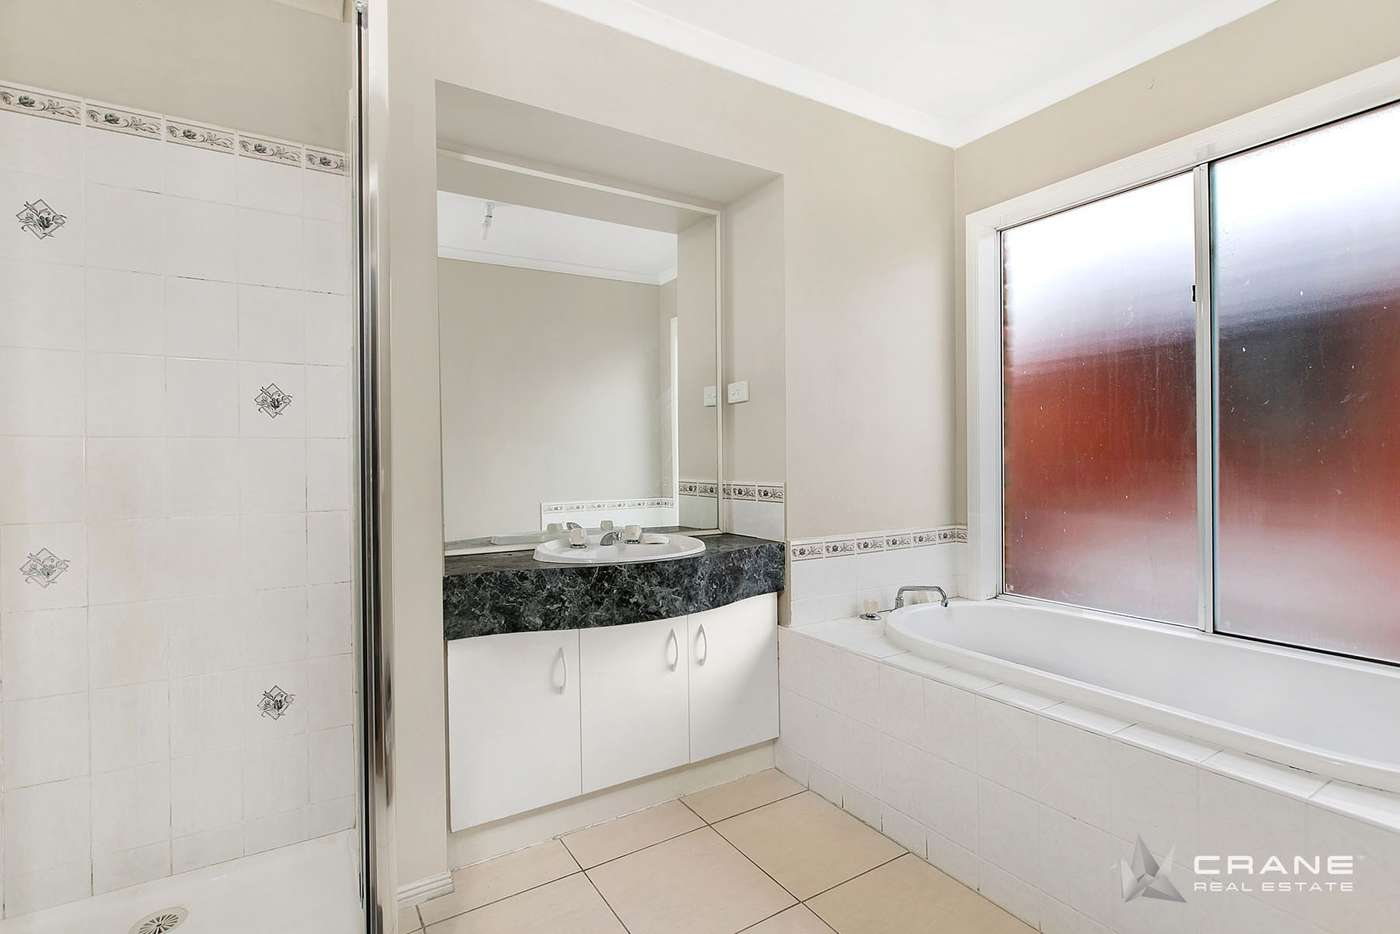 Seventh view of Homely house listing, 23 Dantum Grove, Braybrook VIC 3019